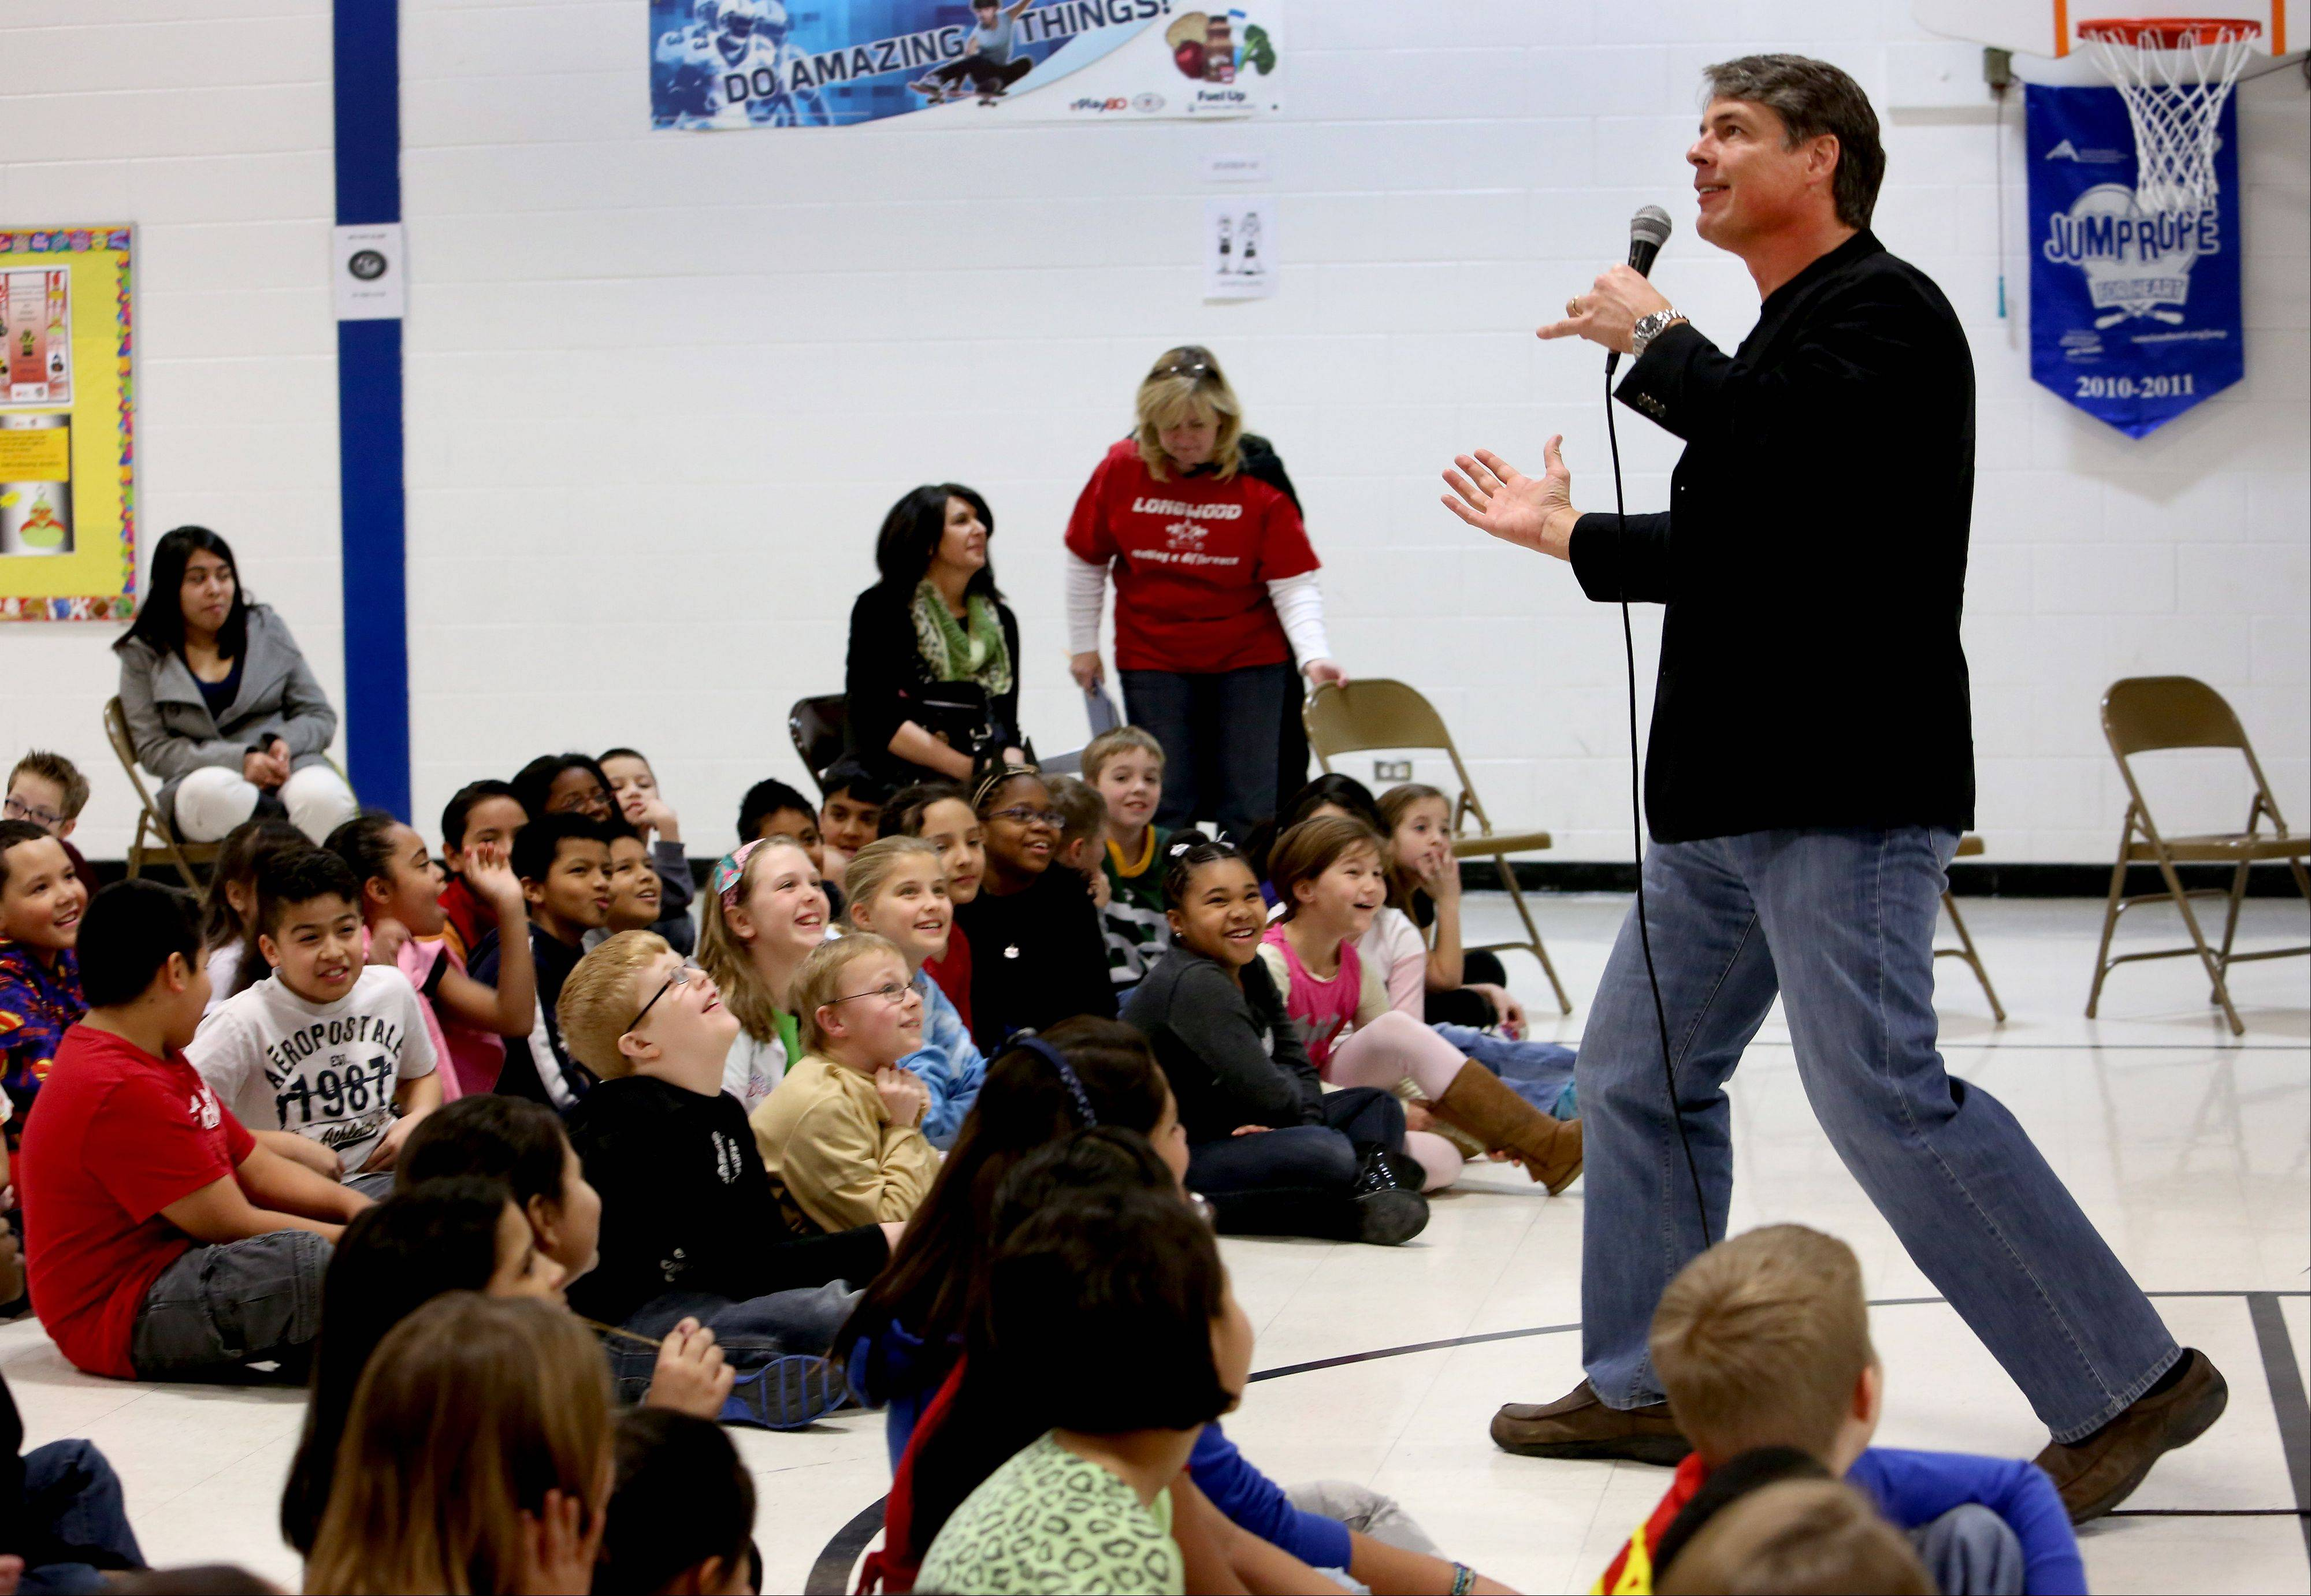 Former NFL football player and children's author Tim Green tells his story to fourth- and fifth-graders during a Naperville READS presentation Thursday at Longwood Elementary School.